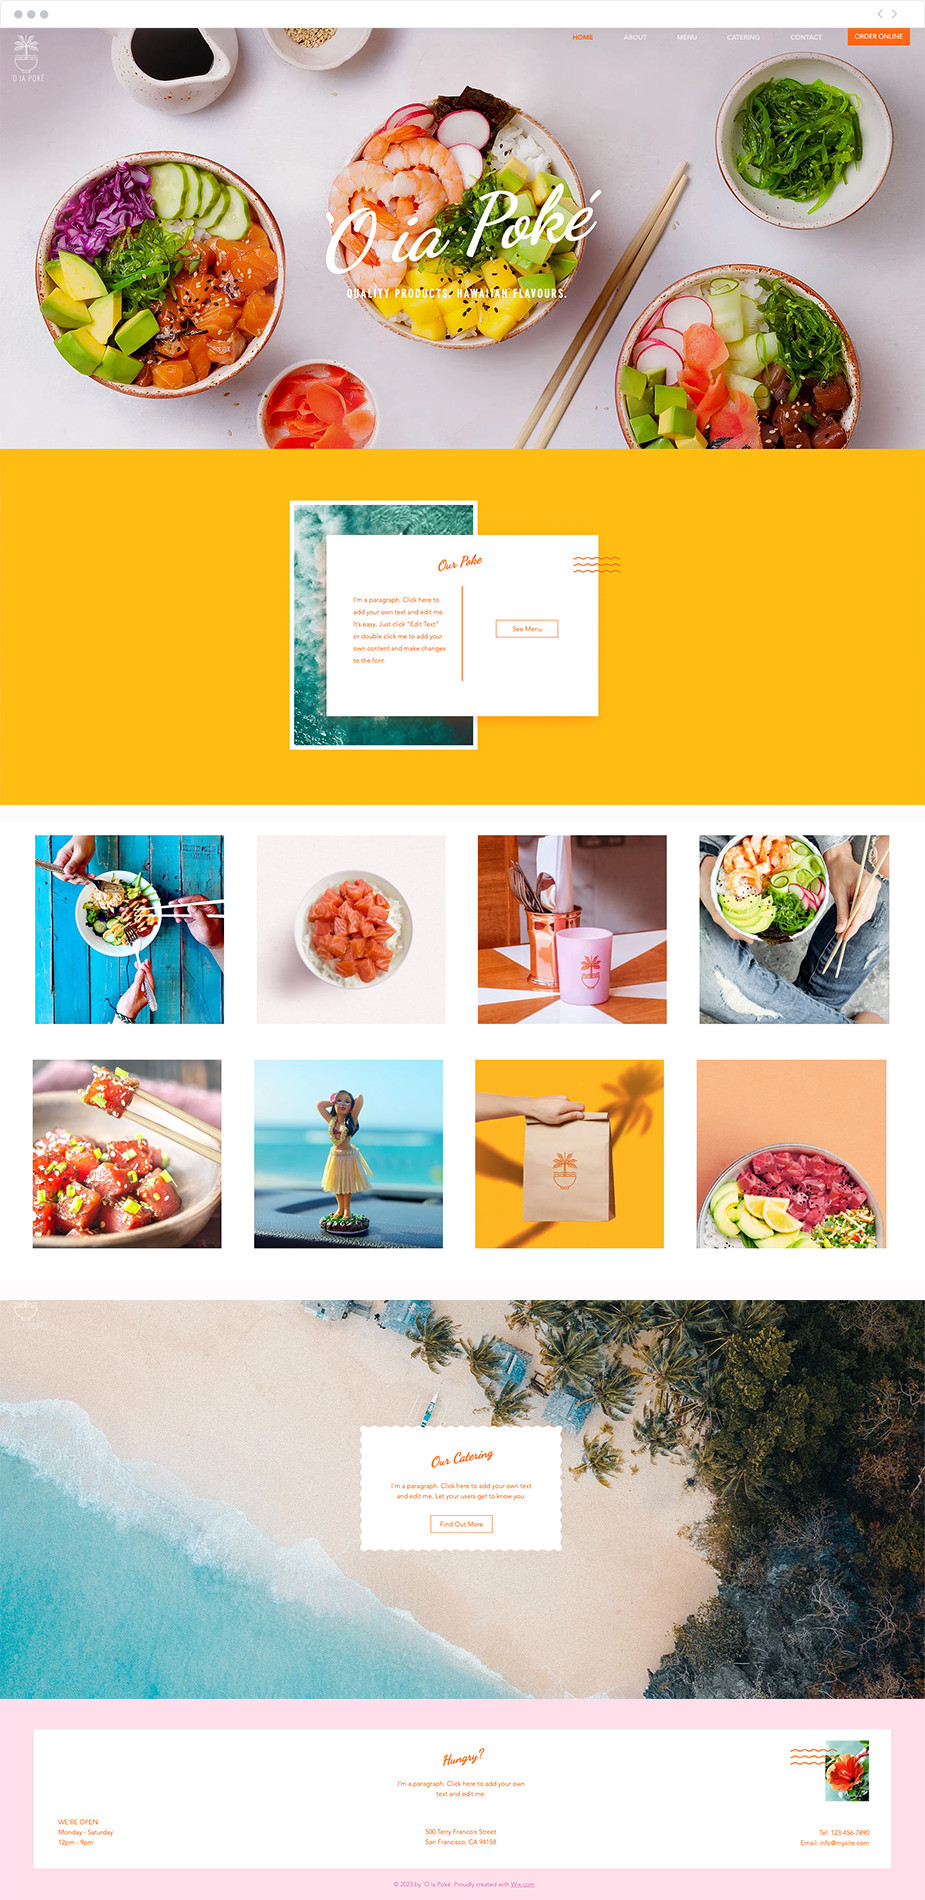 Poke Restaurant Website Template